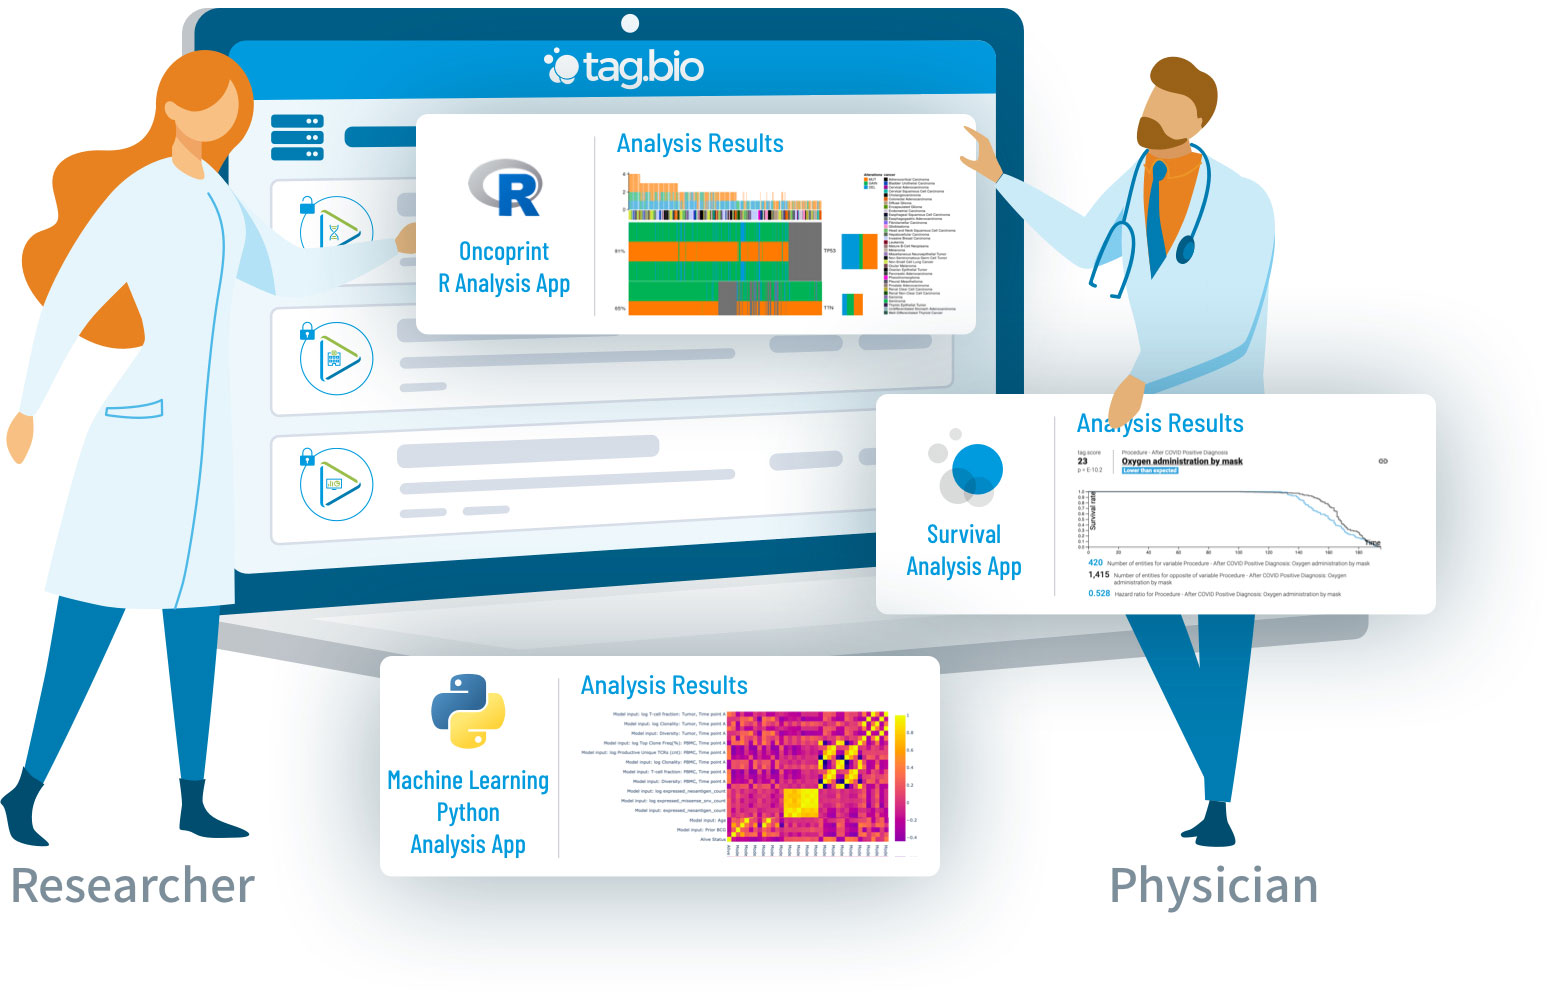 Tag.bio for domain experts, Tag.bio for researchers, Tag.bio for physicians